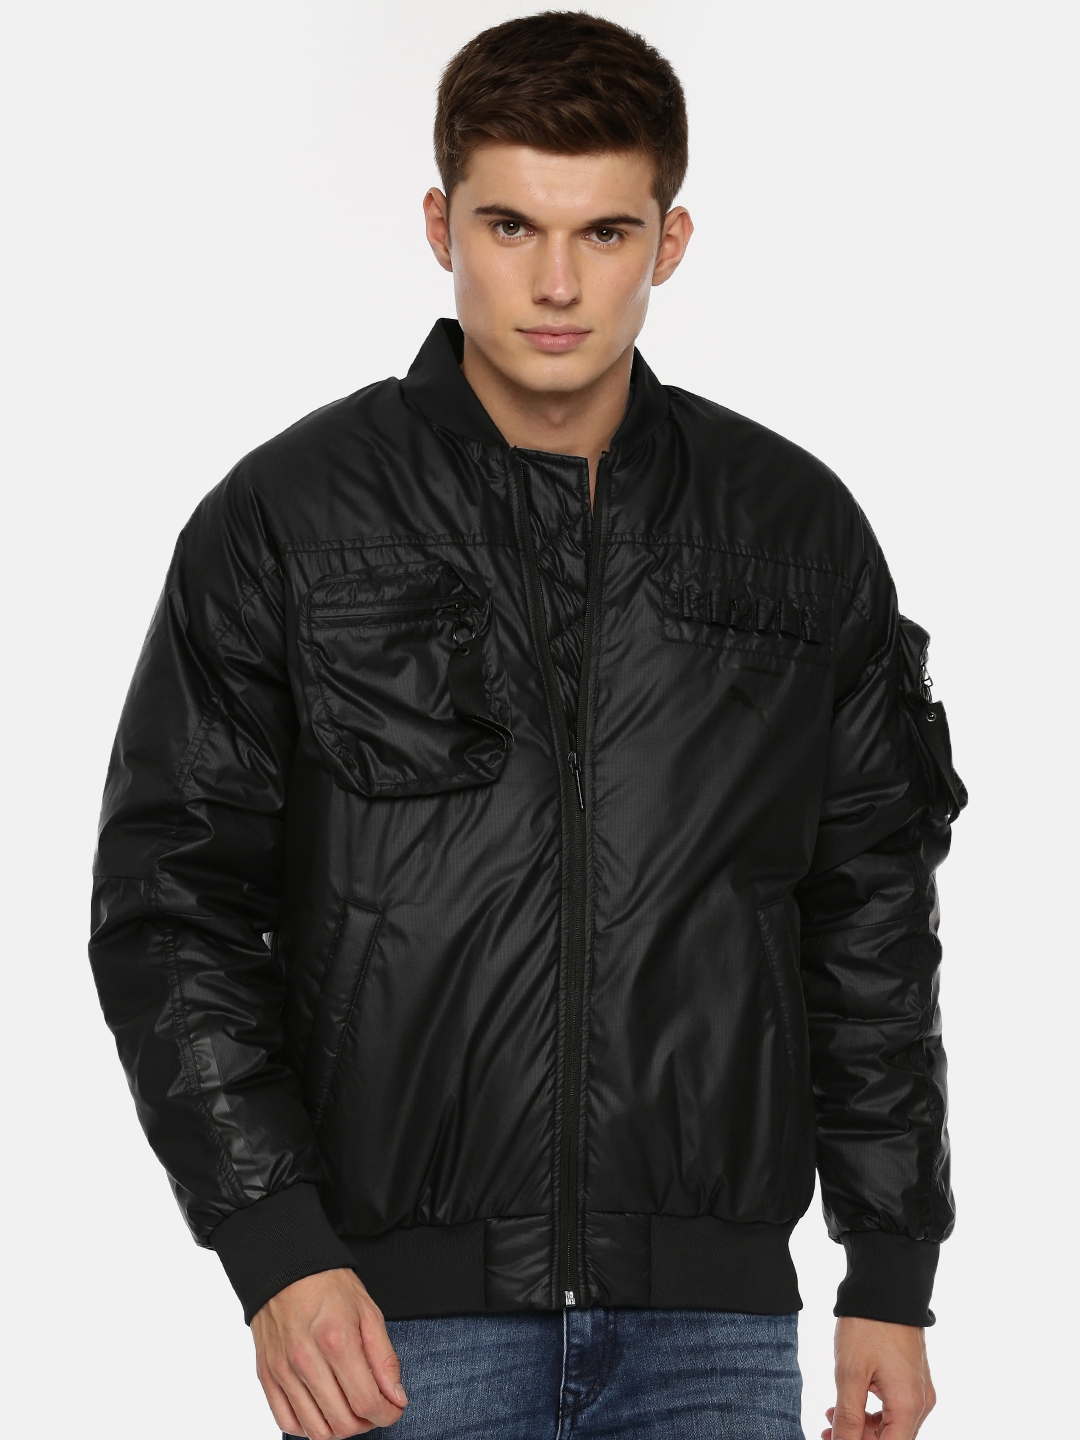 7bfe45d2b180 Buy Puma Men Black Solid Pace Lab Down Bomber Jacket - Jackets for ...